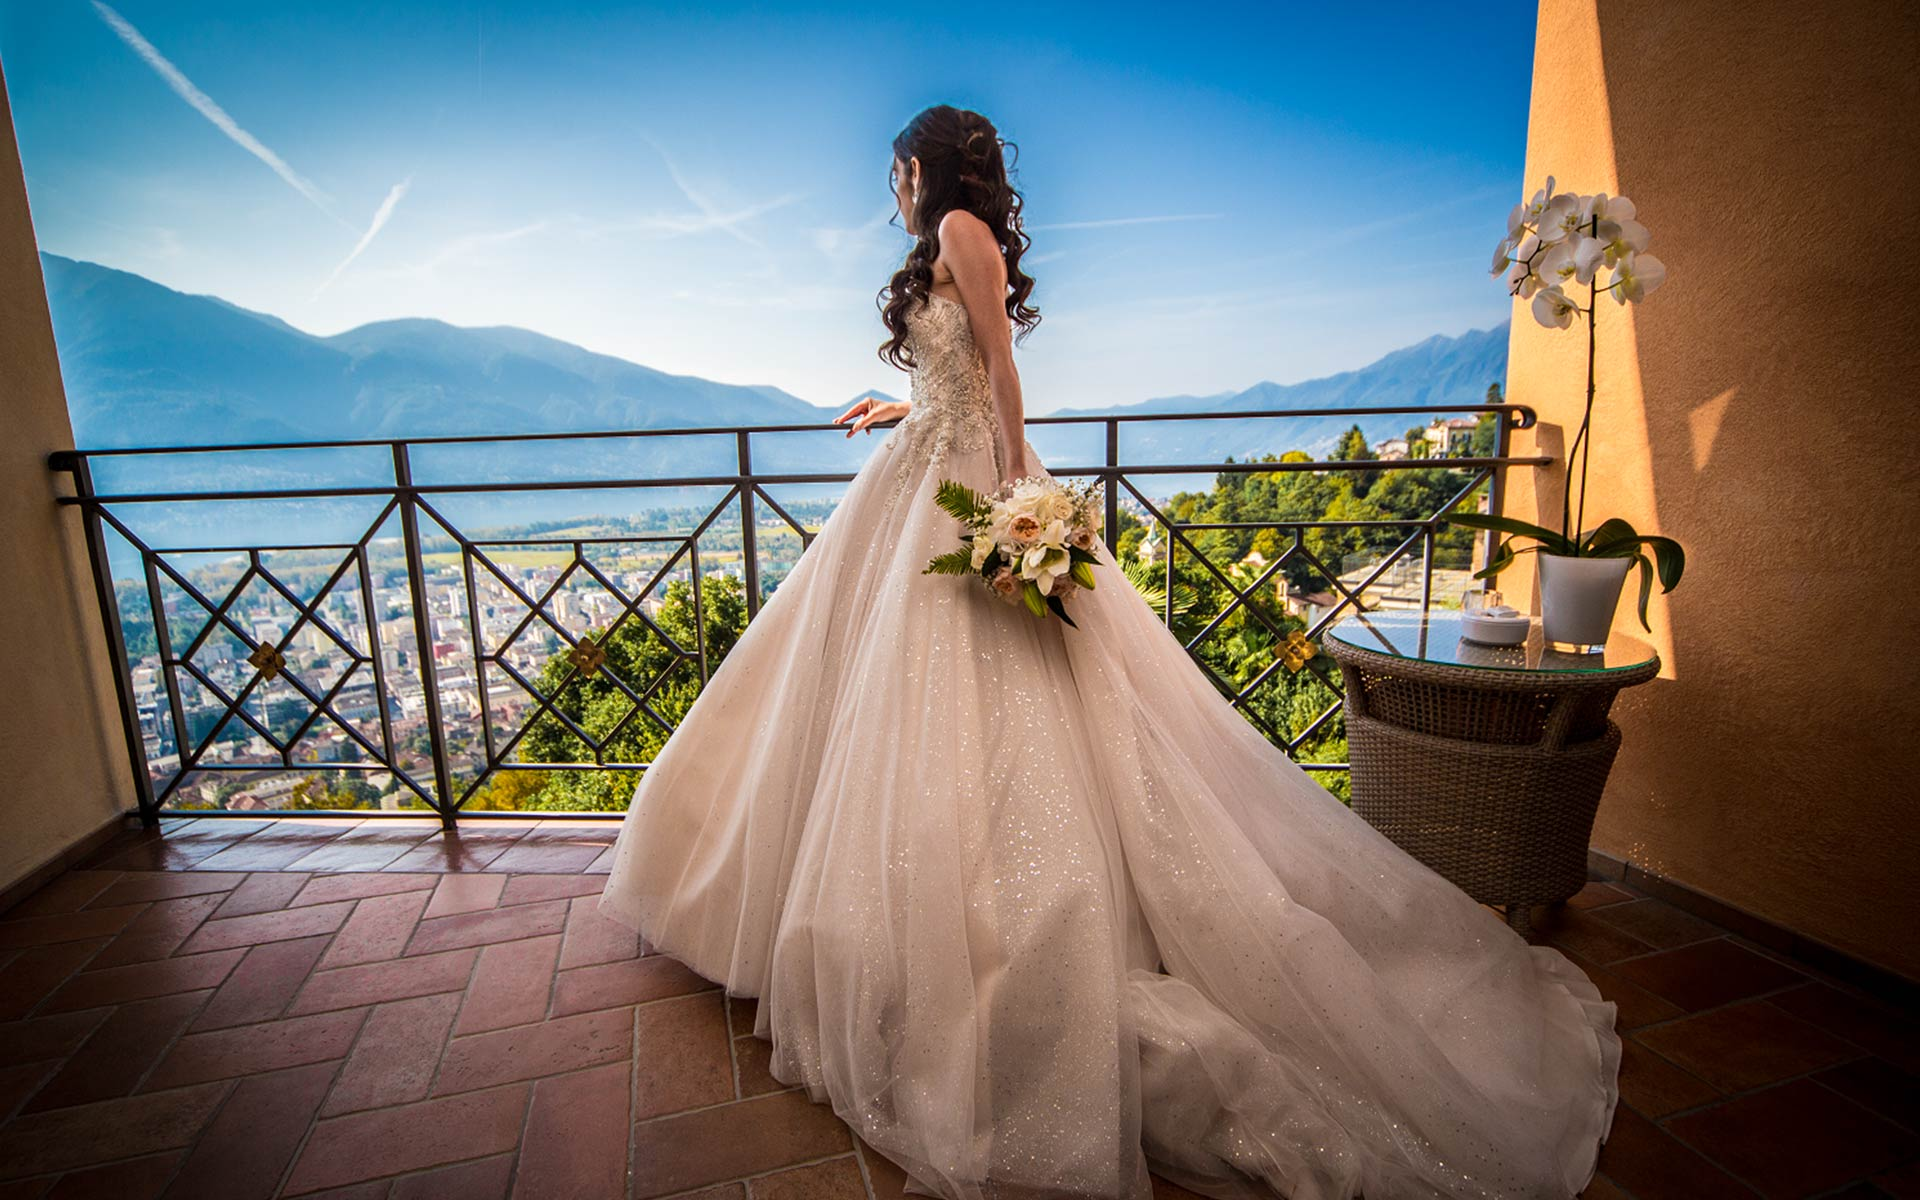 01_boutique_villa_orselina_weddings_05.jpg